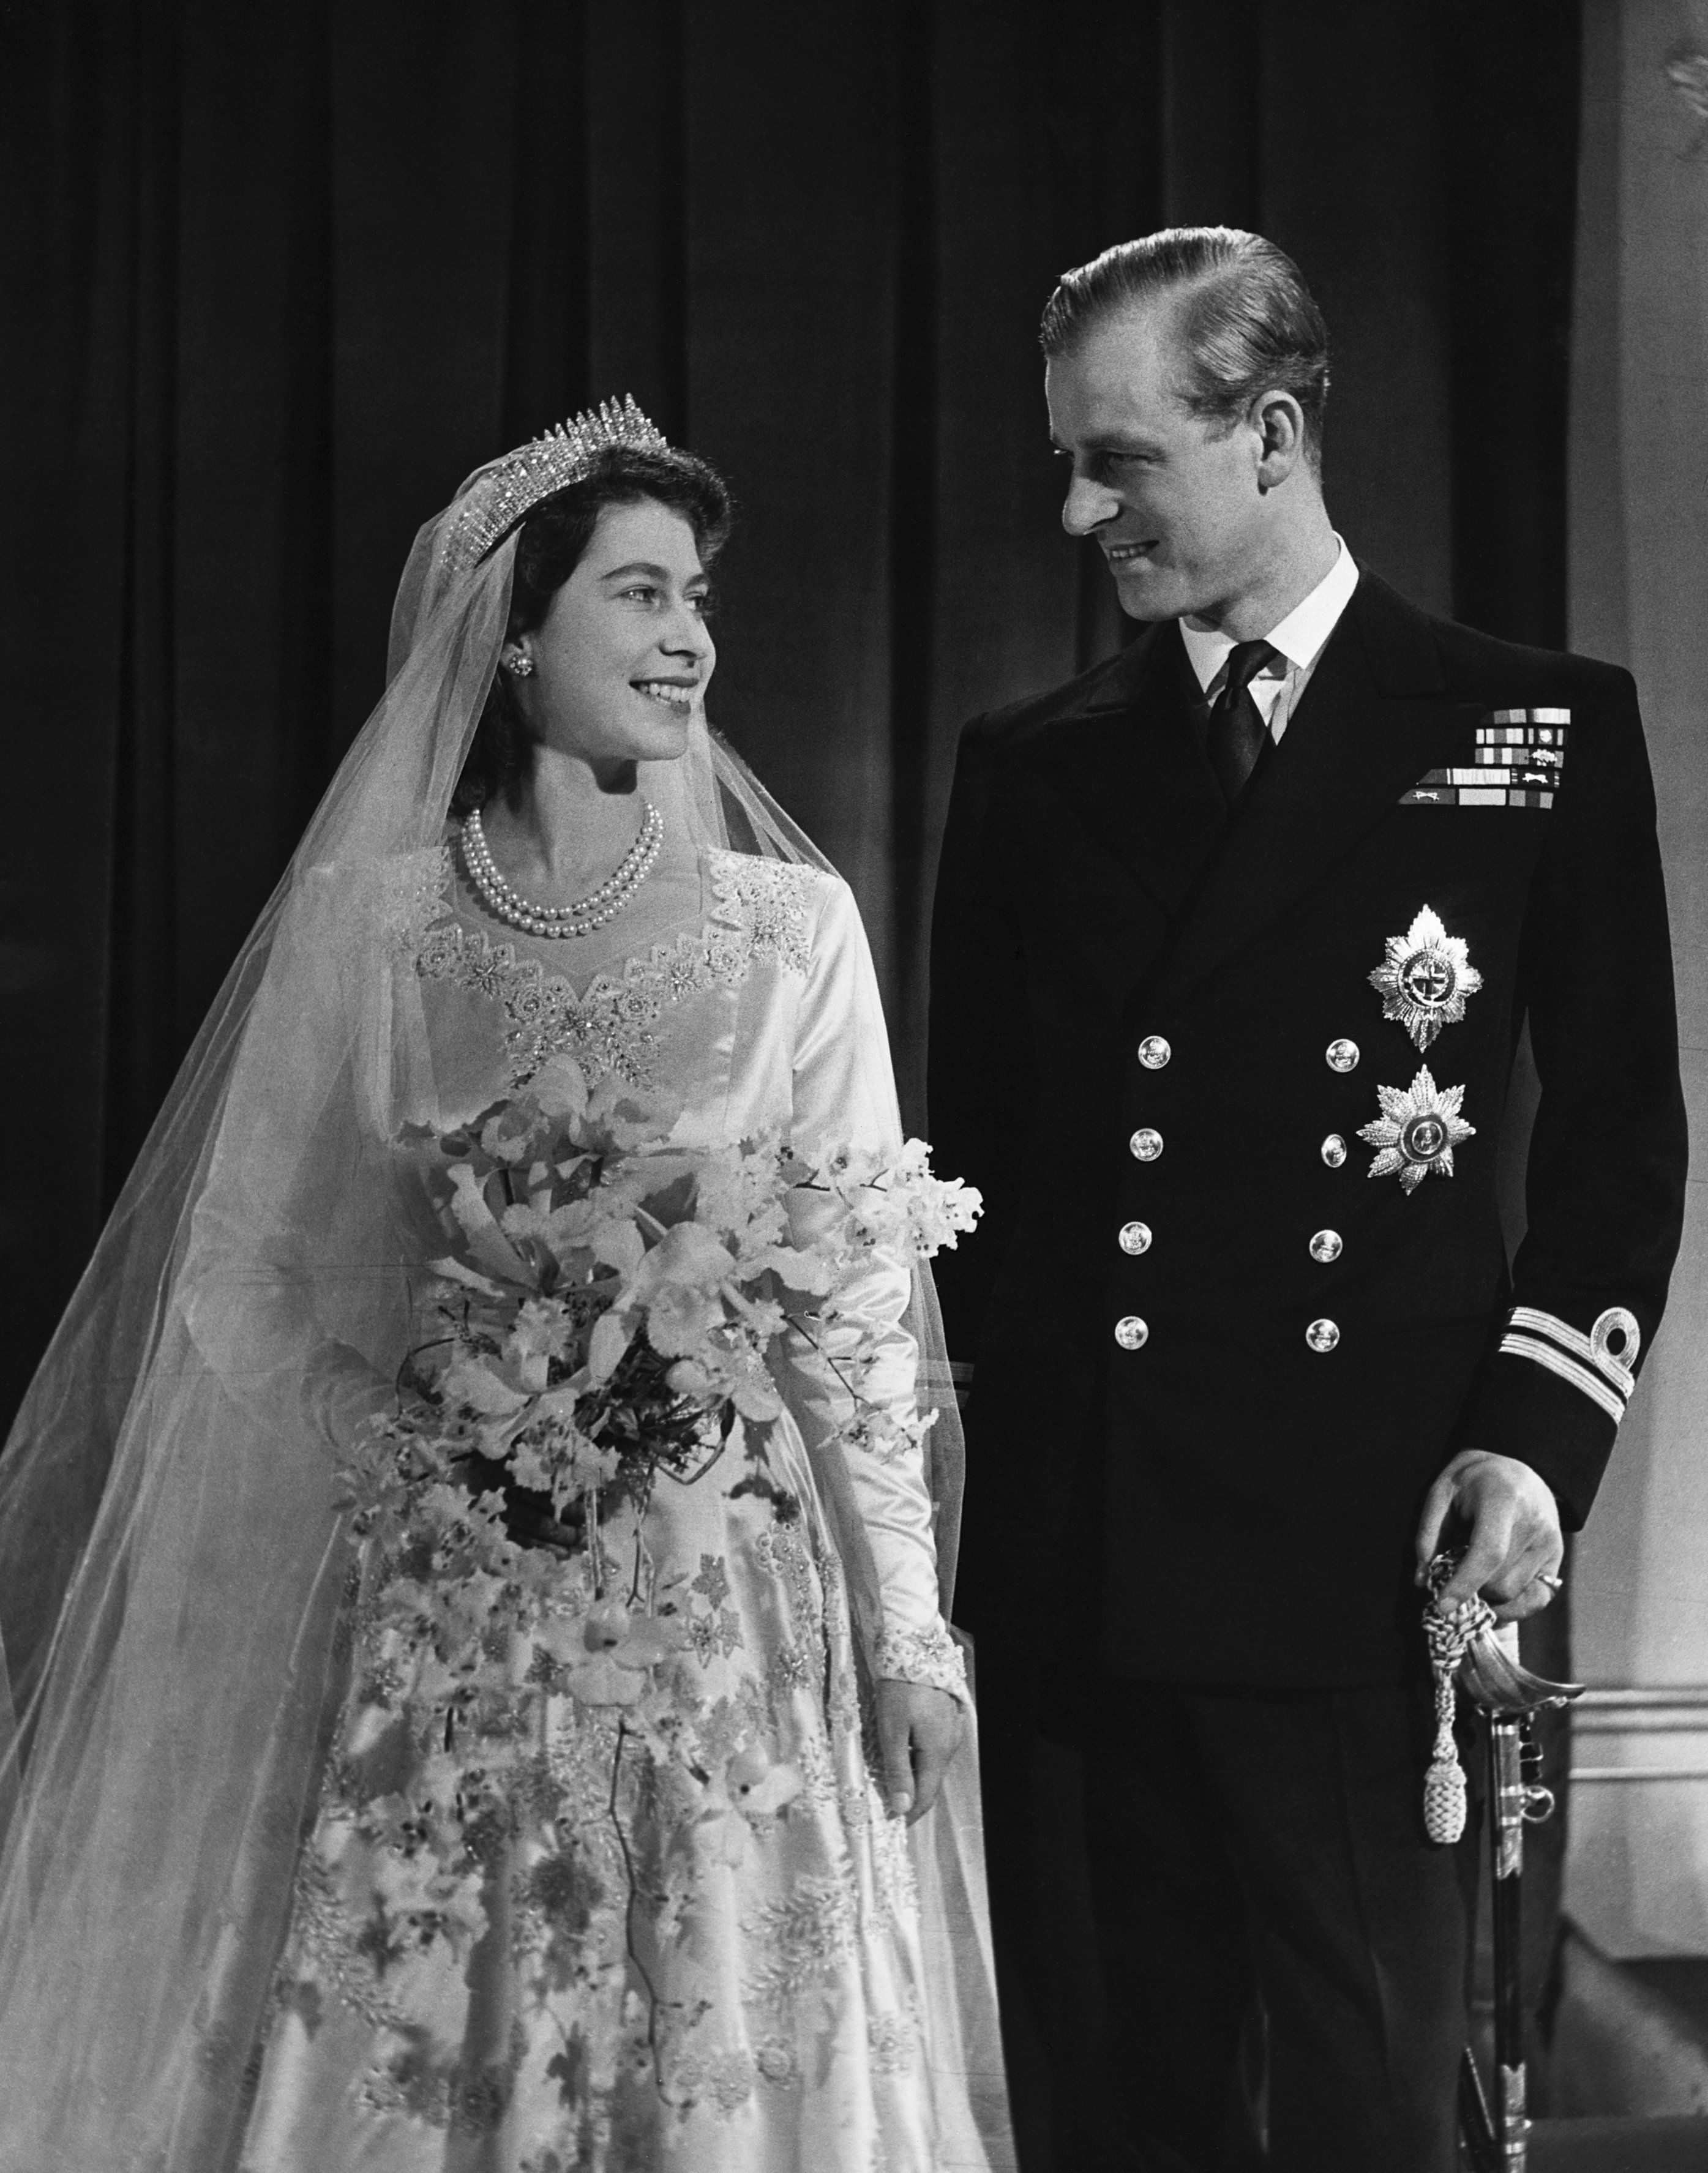 Princess Elizabeth, later Queen Elizabeth II with her husband Phillip, Duke of Edinburgh, after their marriage, 1947. (Photo by © Hulton-Deutsch Collection/CORBIS/Corbis via Getty Images)